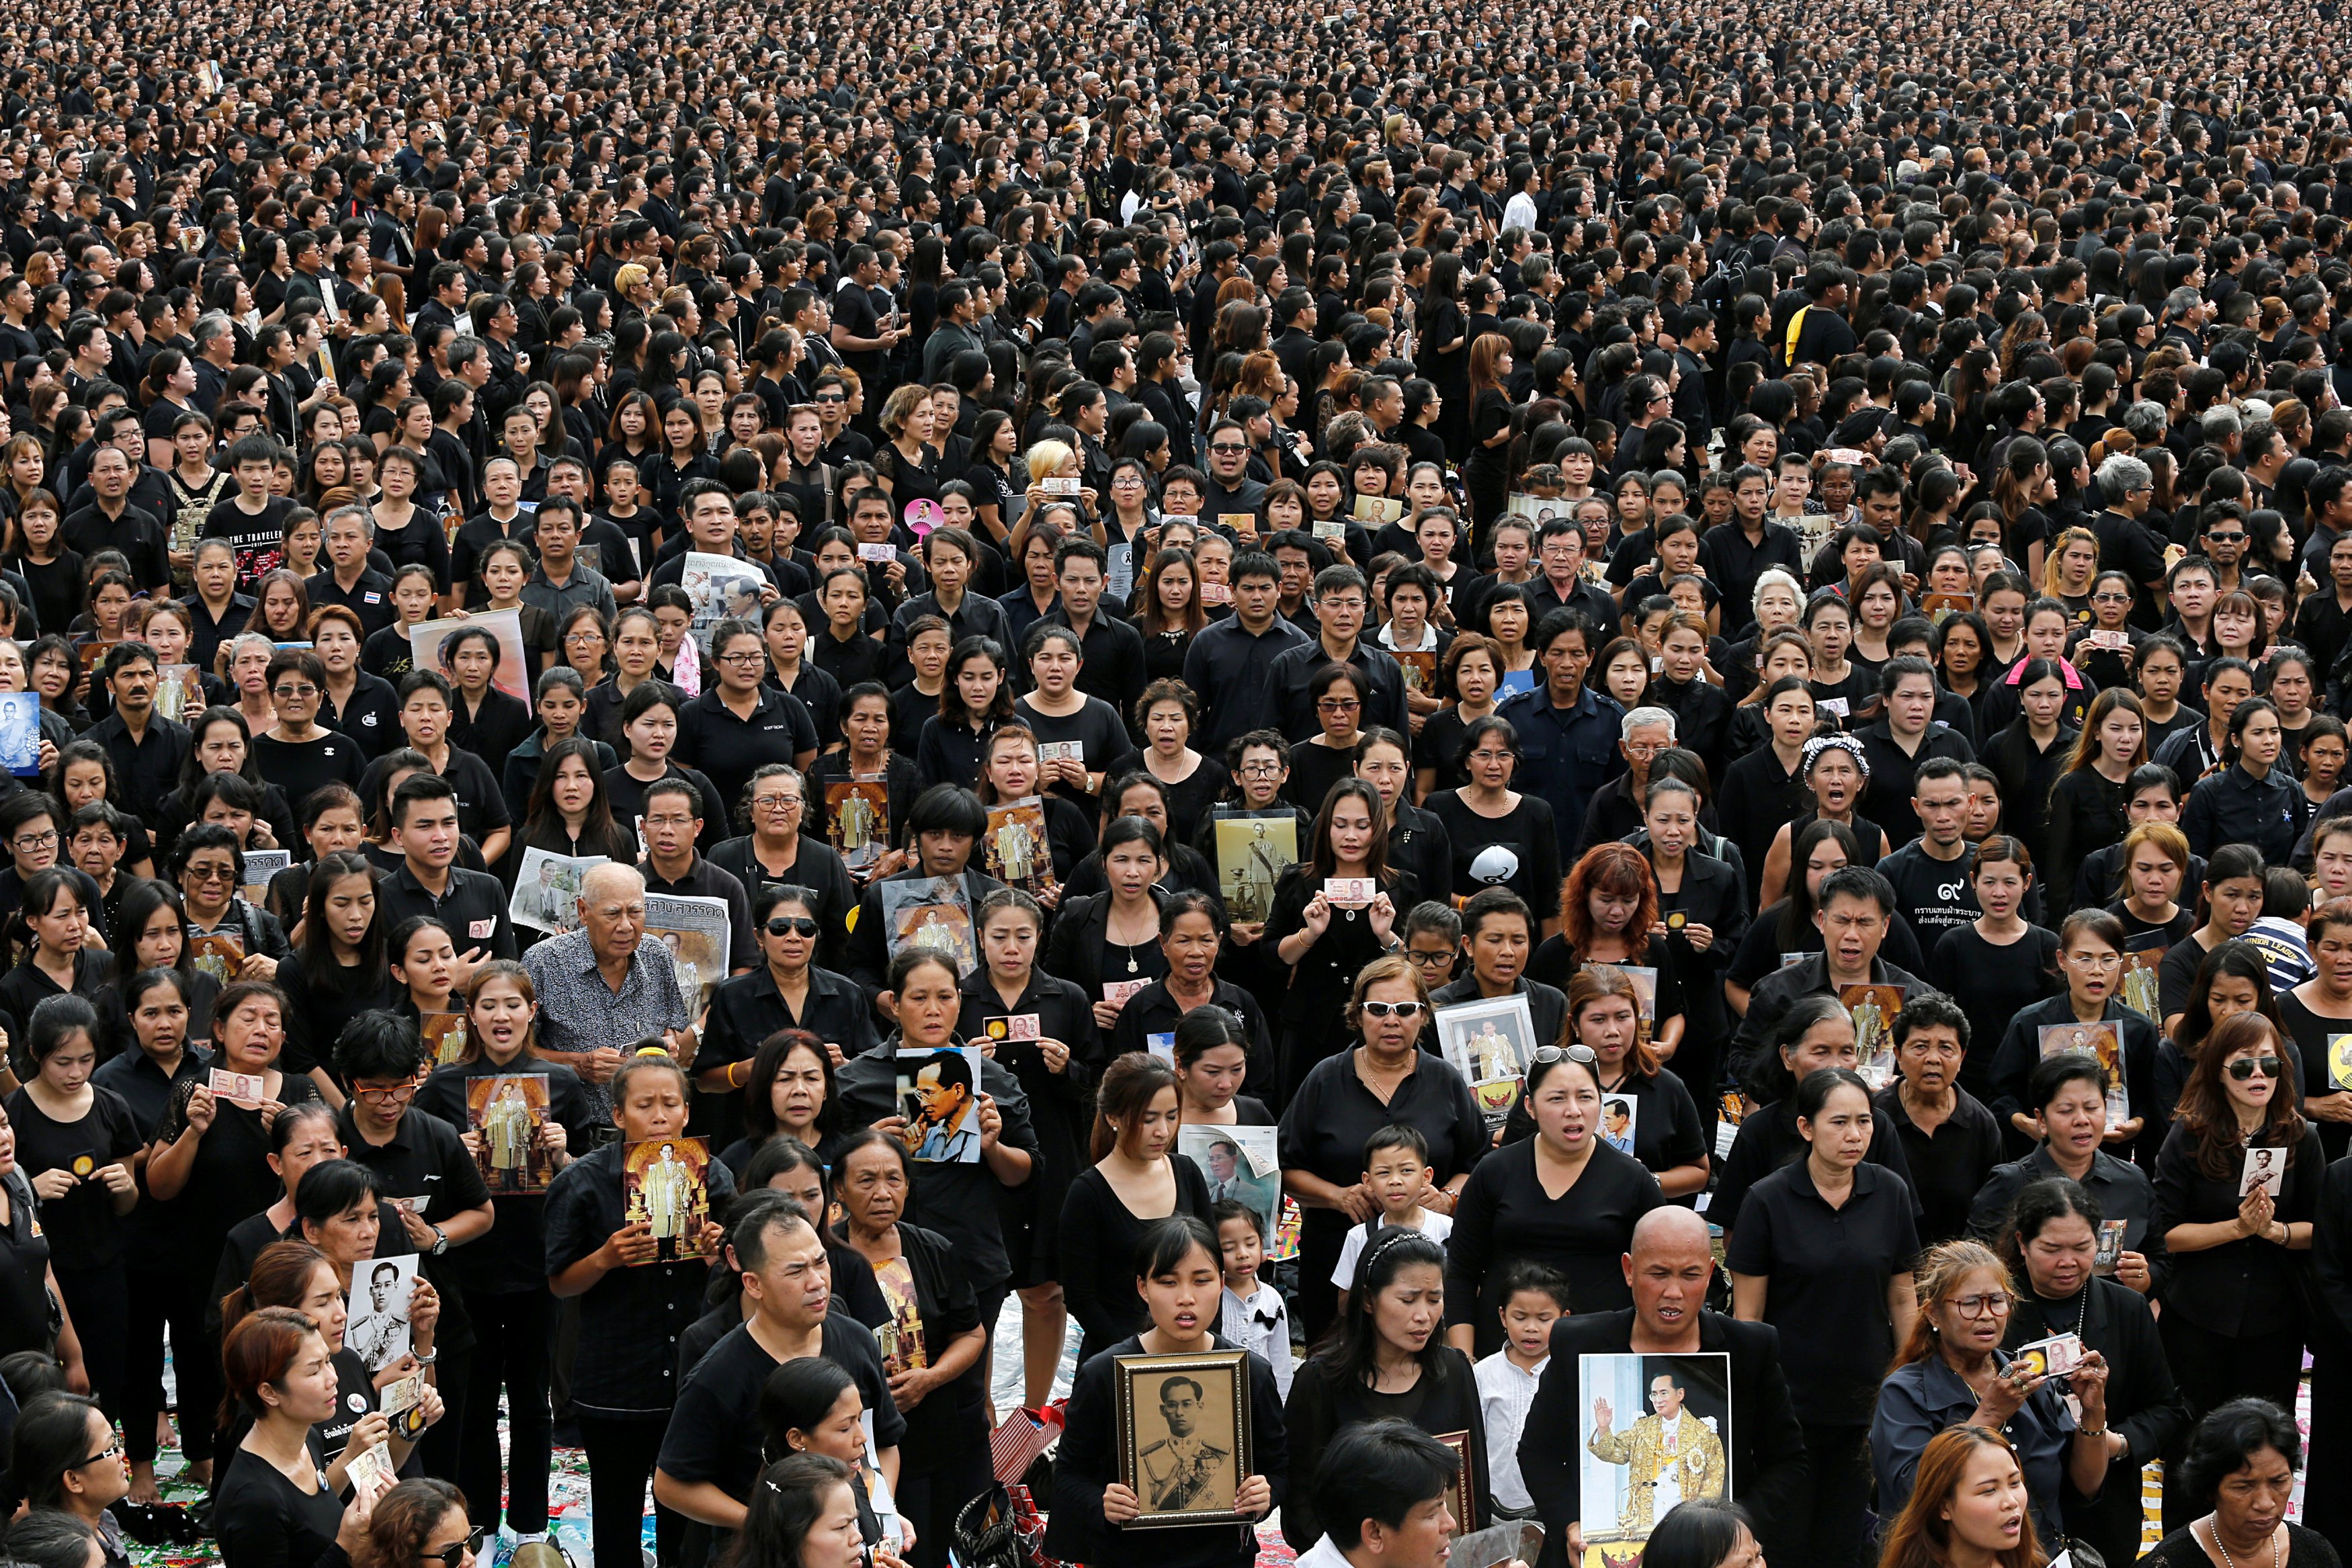 An estimated 500,000 mourners gathered at Sanam Luang Ceremonial Ground in Bangkok on October 22, 2016, for a mass singing of the Thai National Anthem. Photos courtesy of Reuters